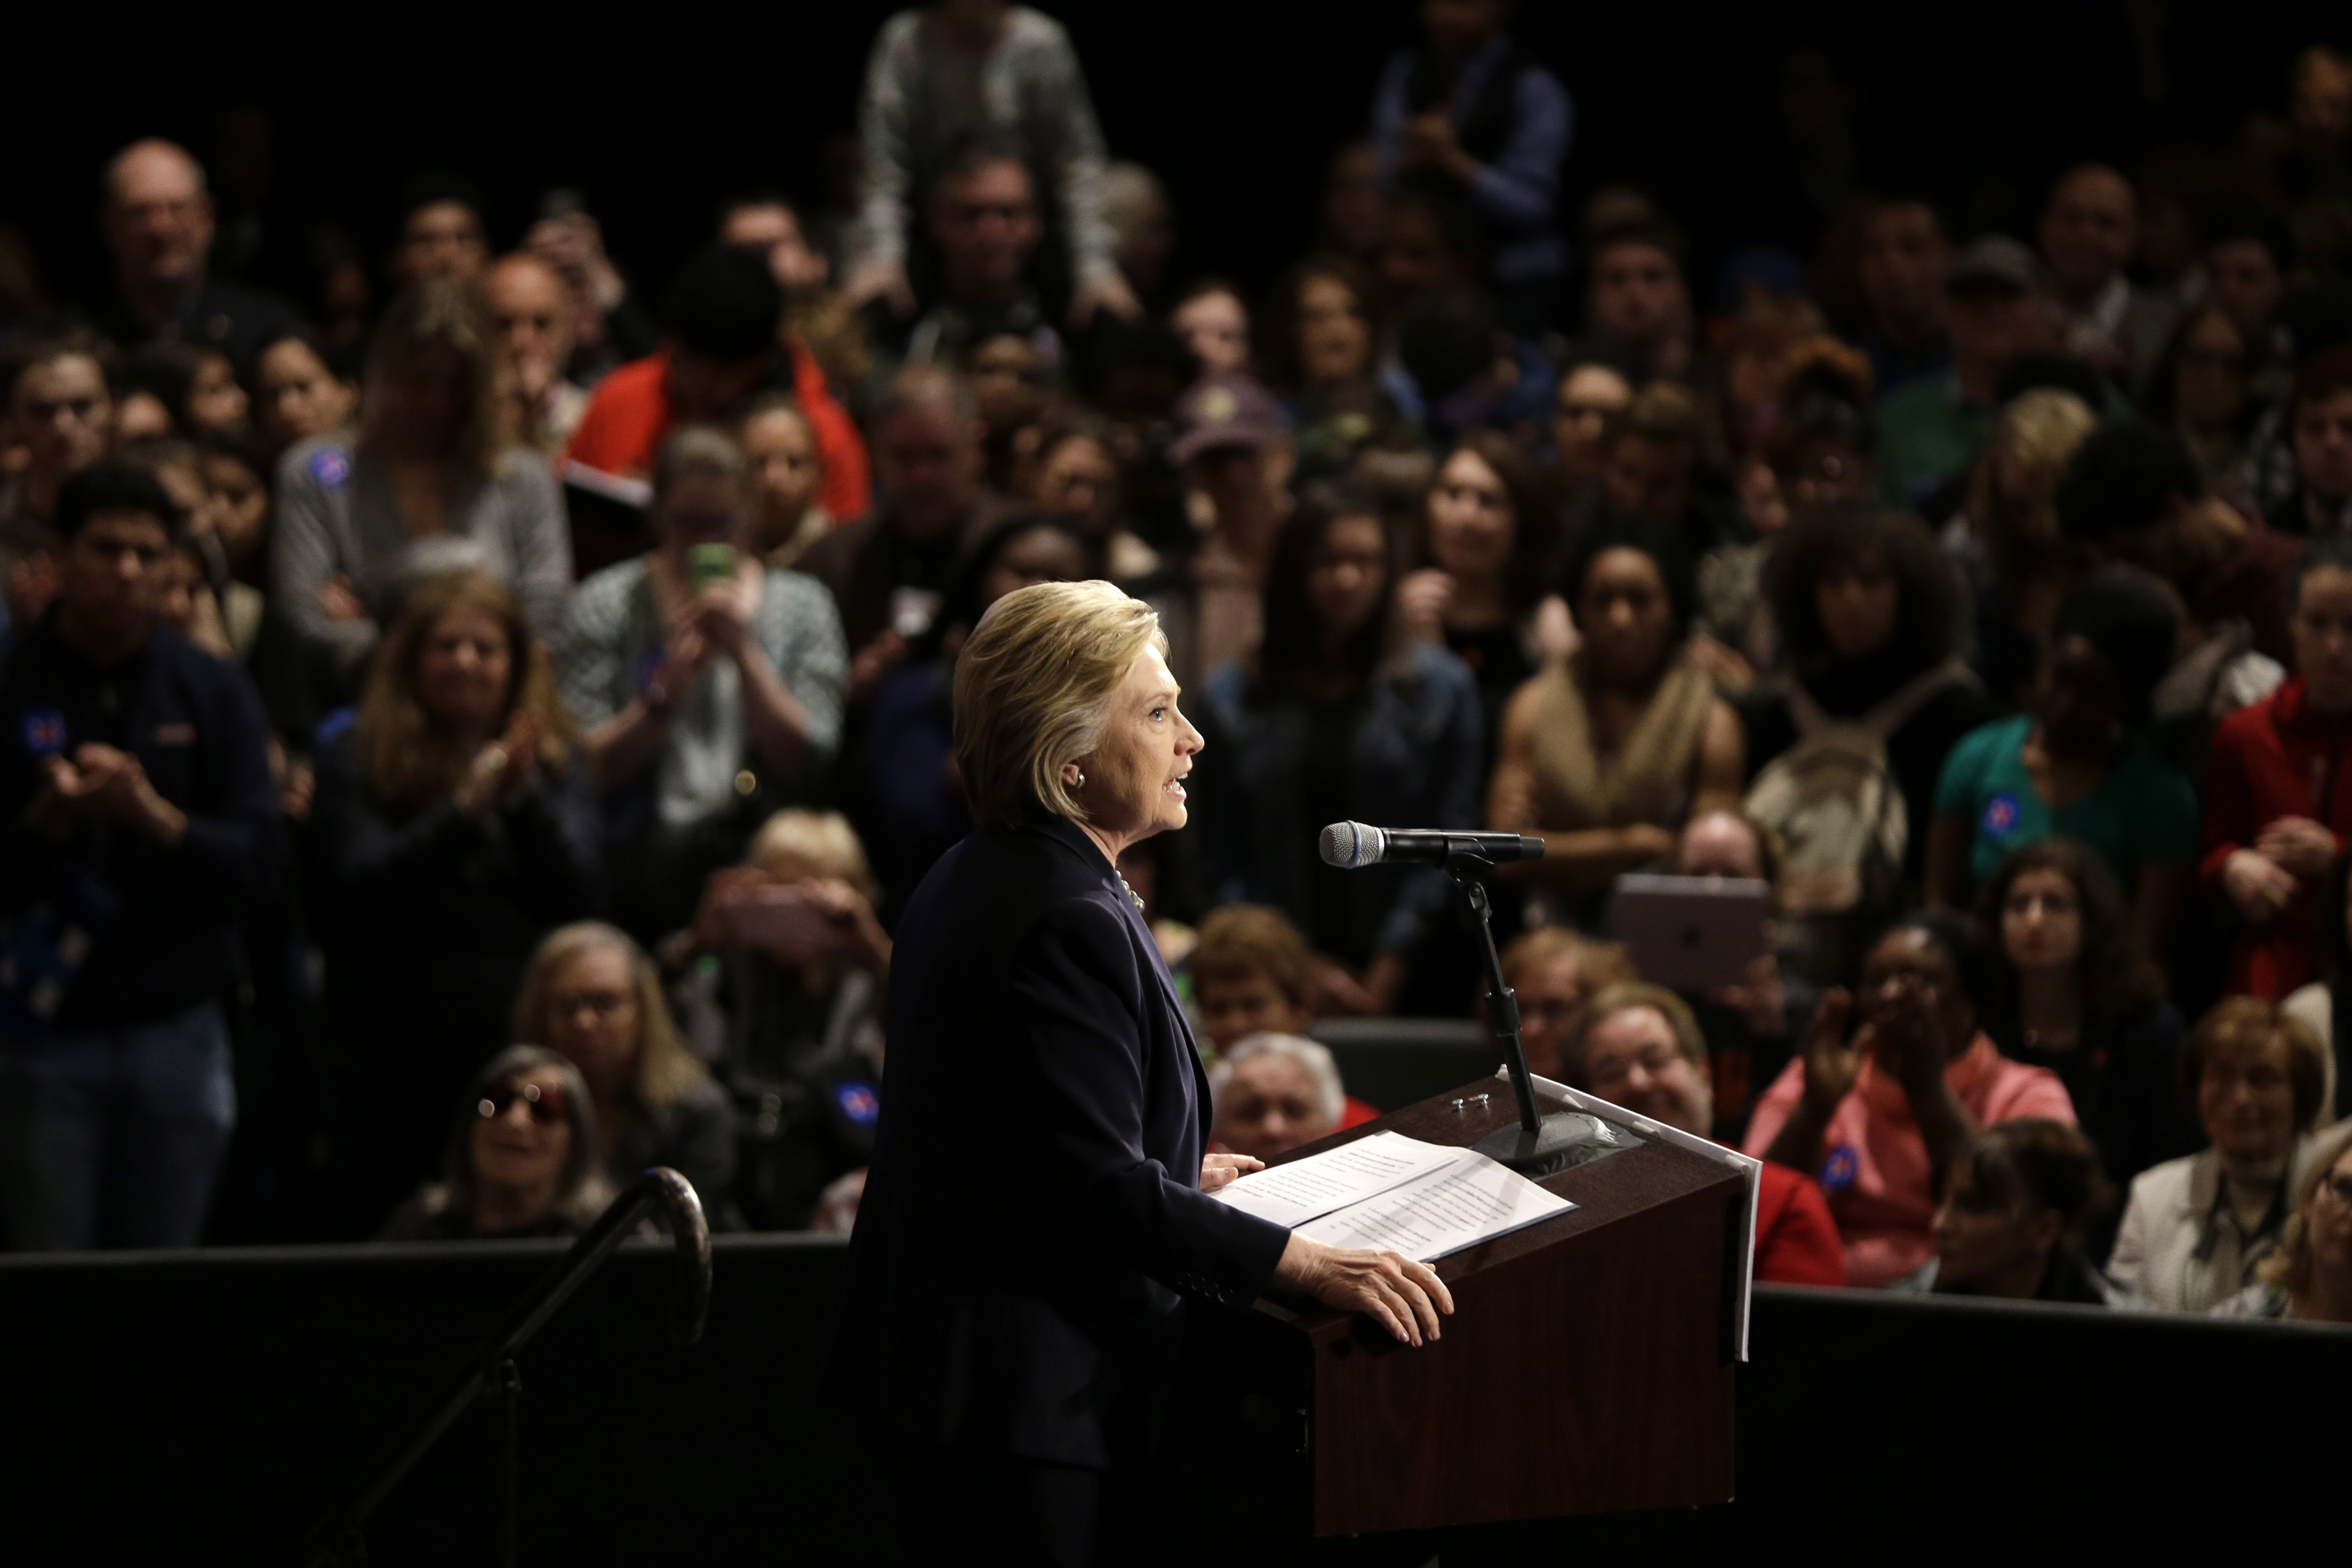 Hillary Clinton speaks at a rally in Purchase, on March 31, 2016.